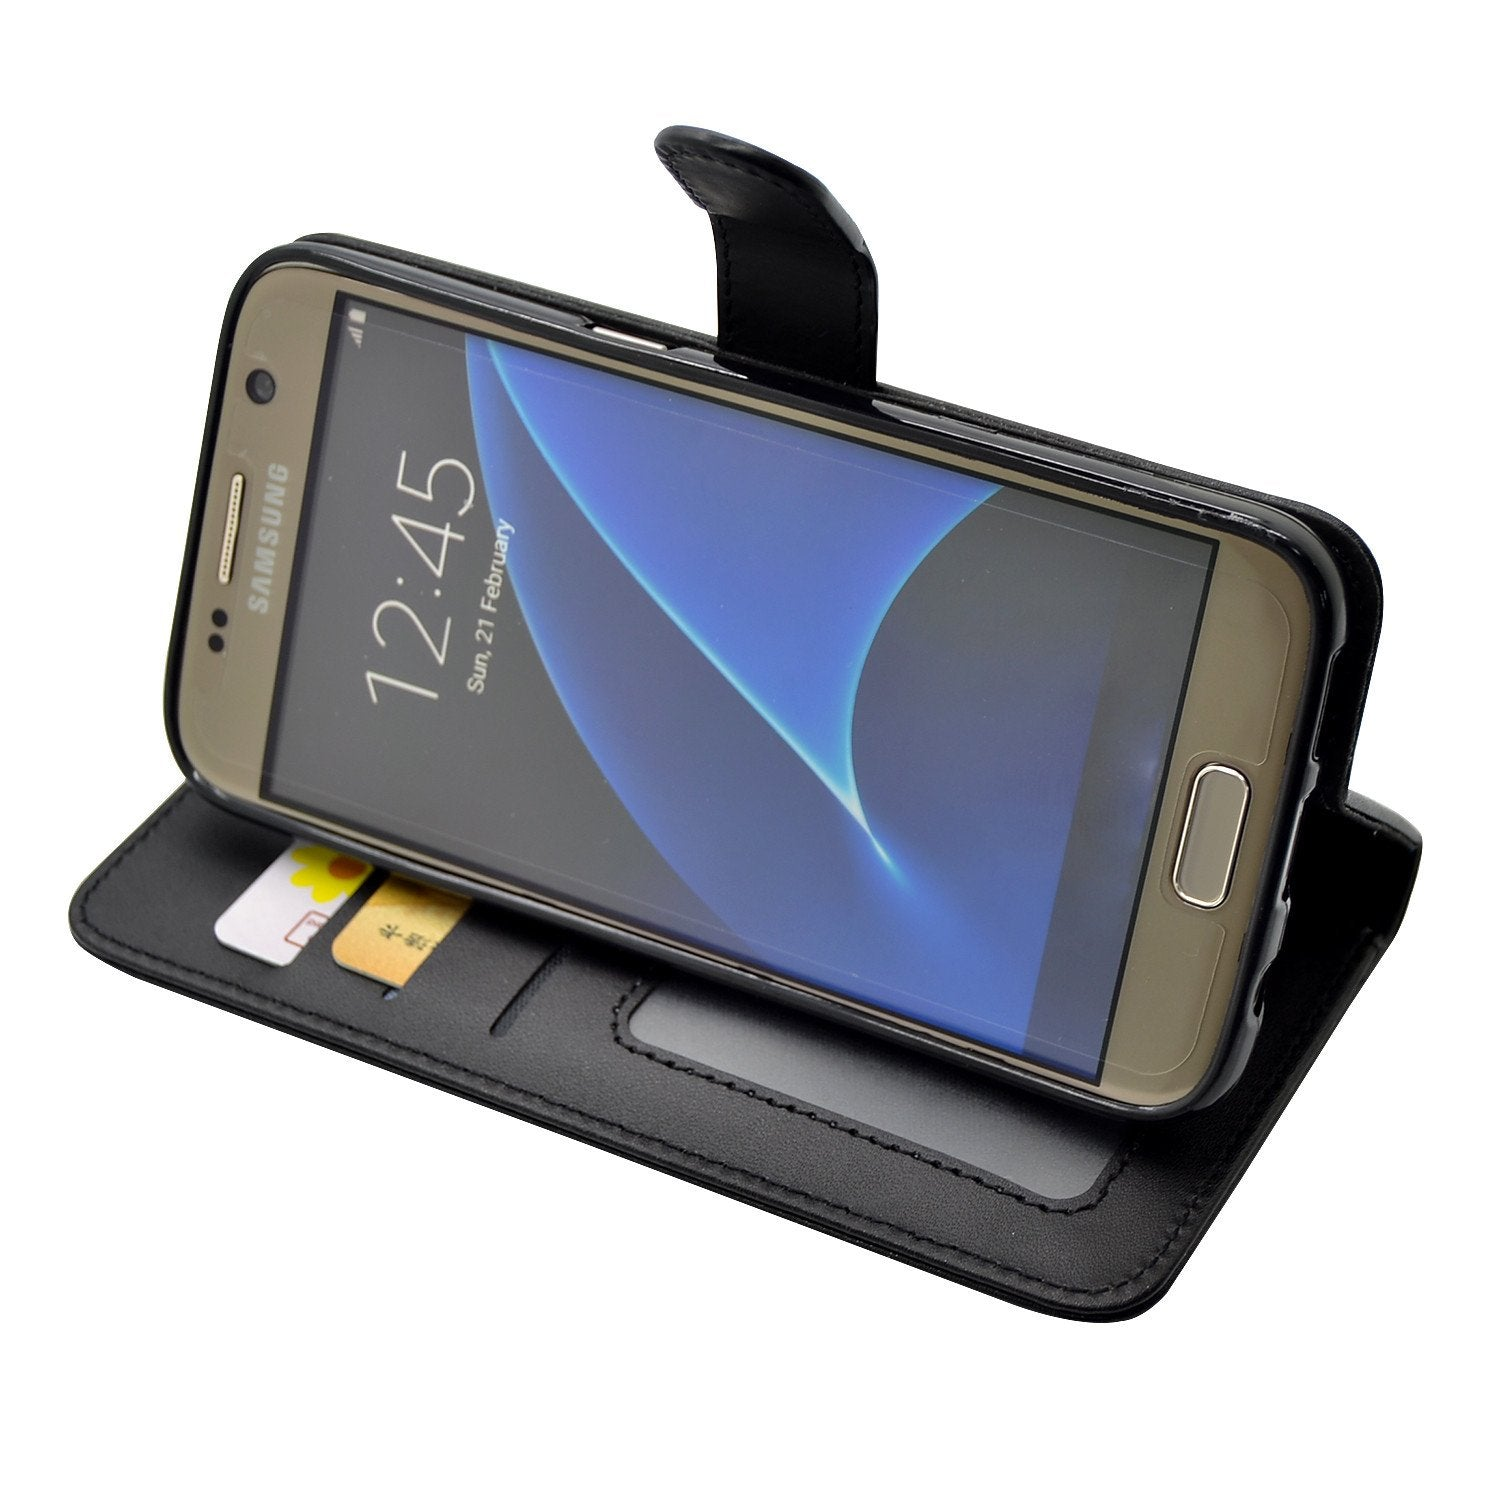 EVERYDAY Leather Wallet Phone Cover – Samsung Galaxy S6 Edge Plus